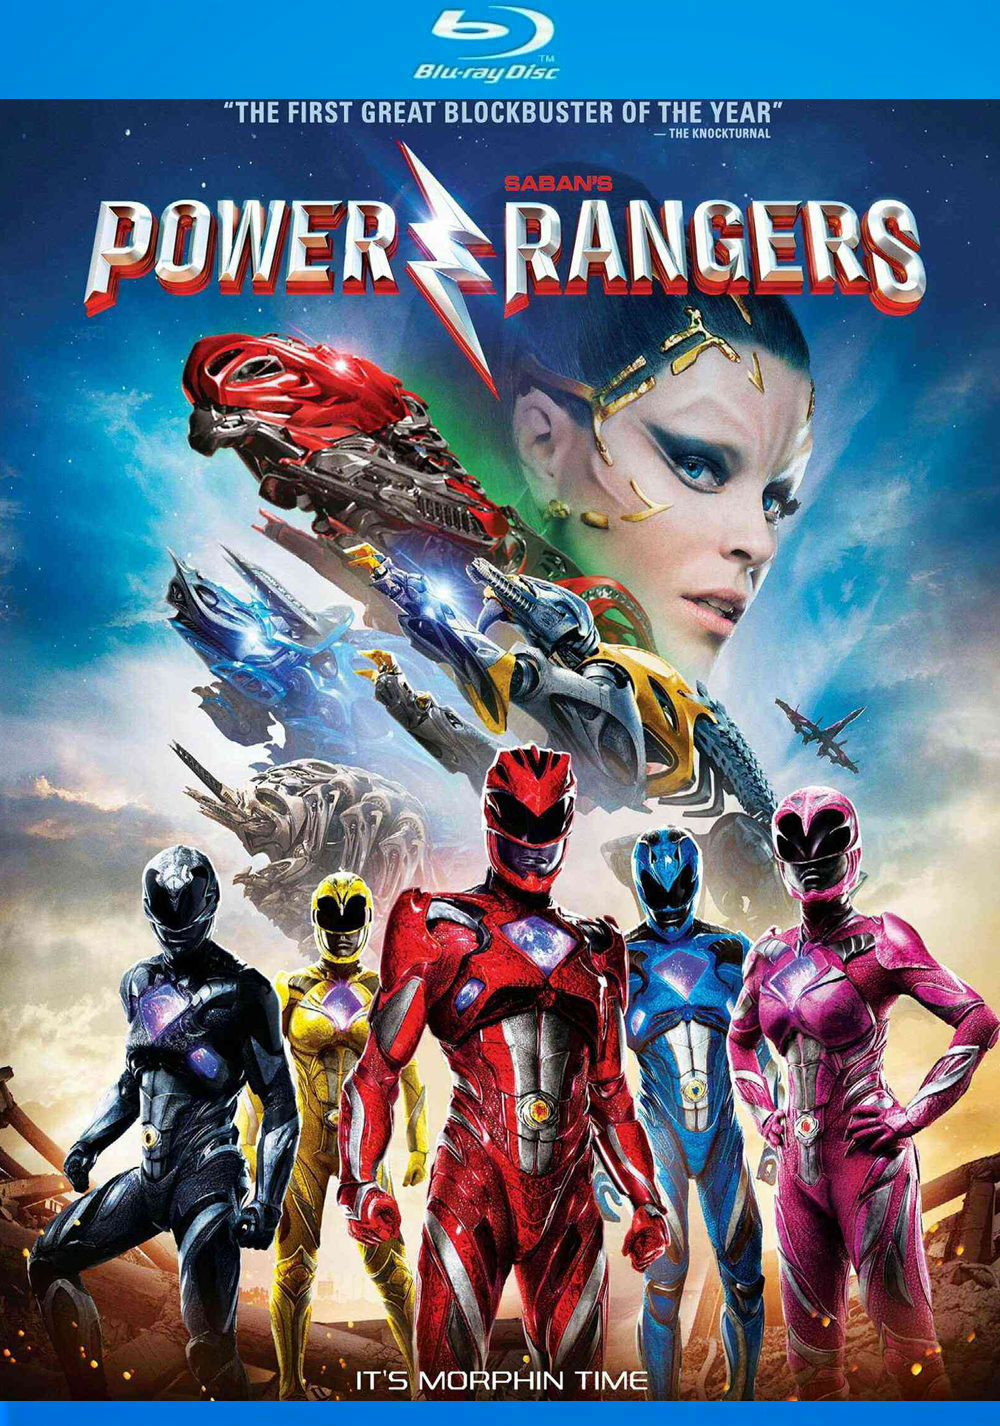 Download Power Rangers (2017) - Dublado MP4 720p / 1080p HDRip MEGA